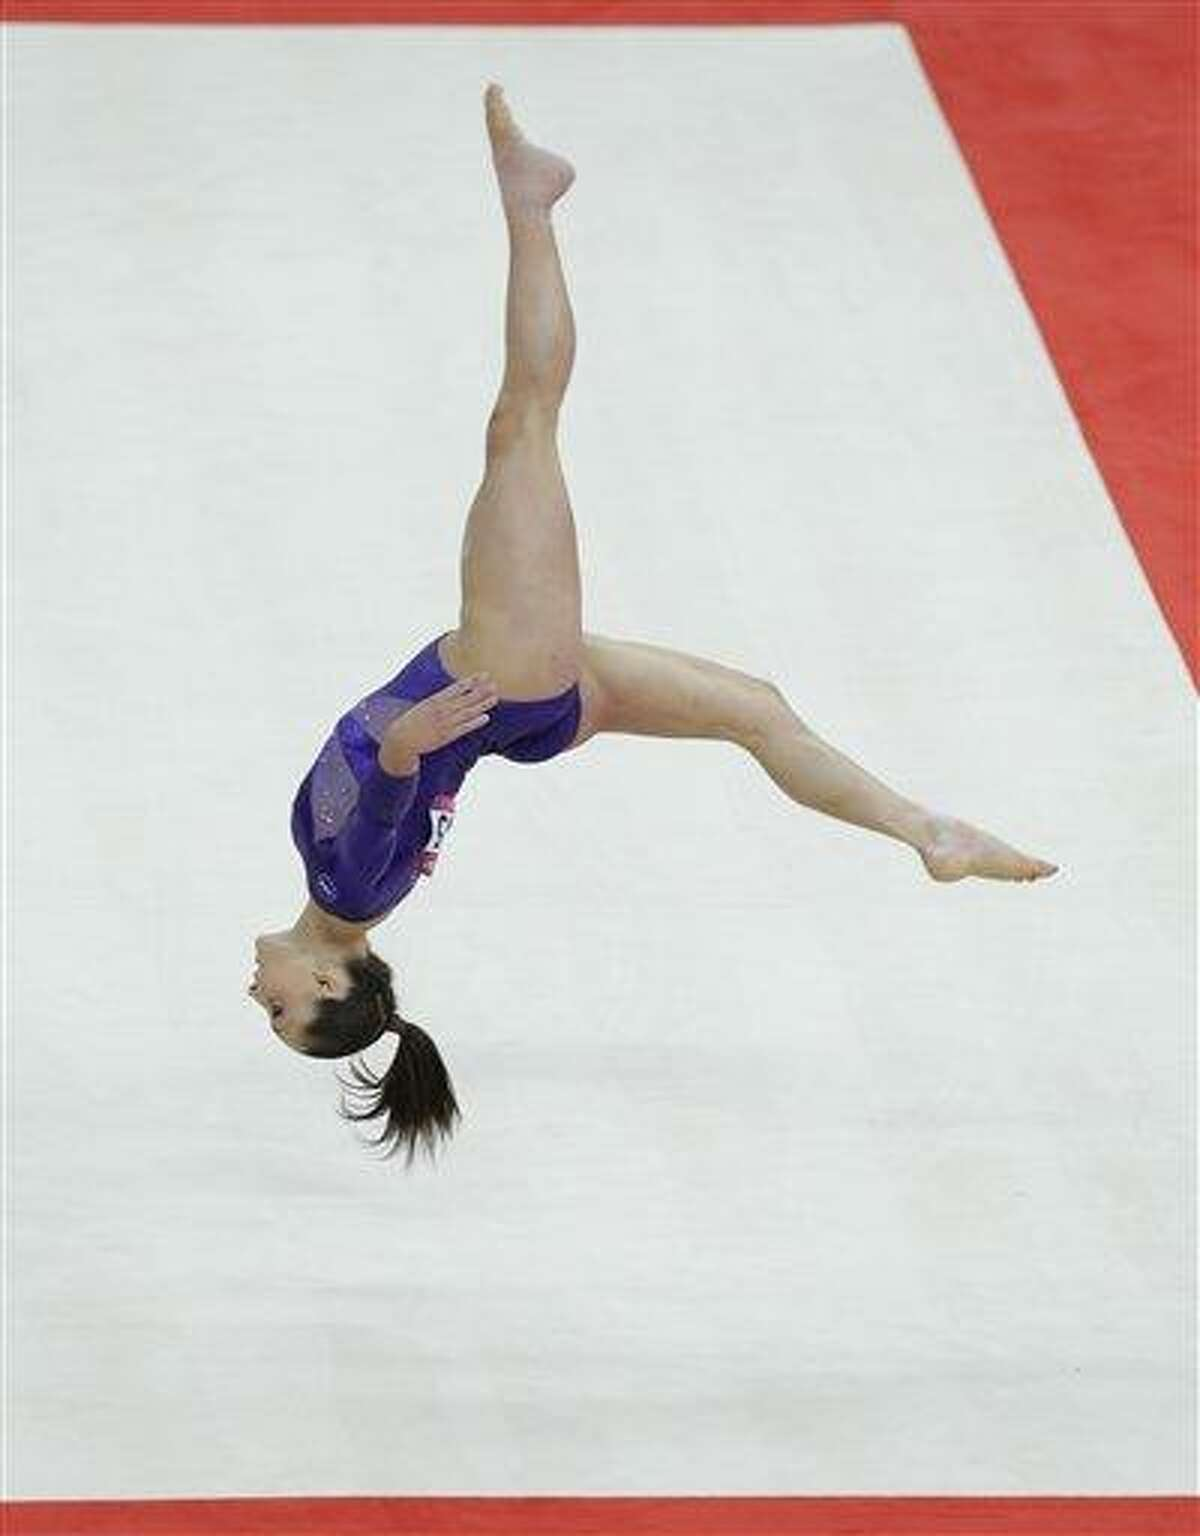 U.S. gymnast Jordyn Wieber performs on the floor during the Artistic Gymnastic women's qualifications at the 2012 Summer Olympics Sunday in London. Associated Press